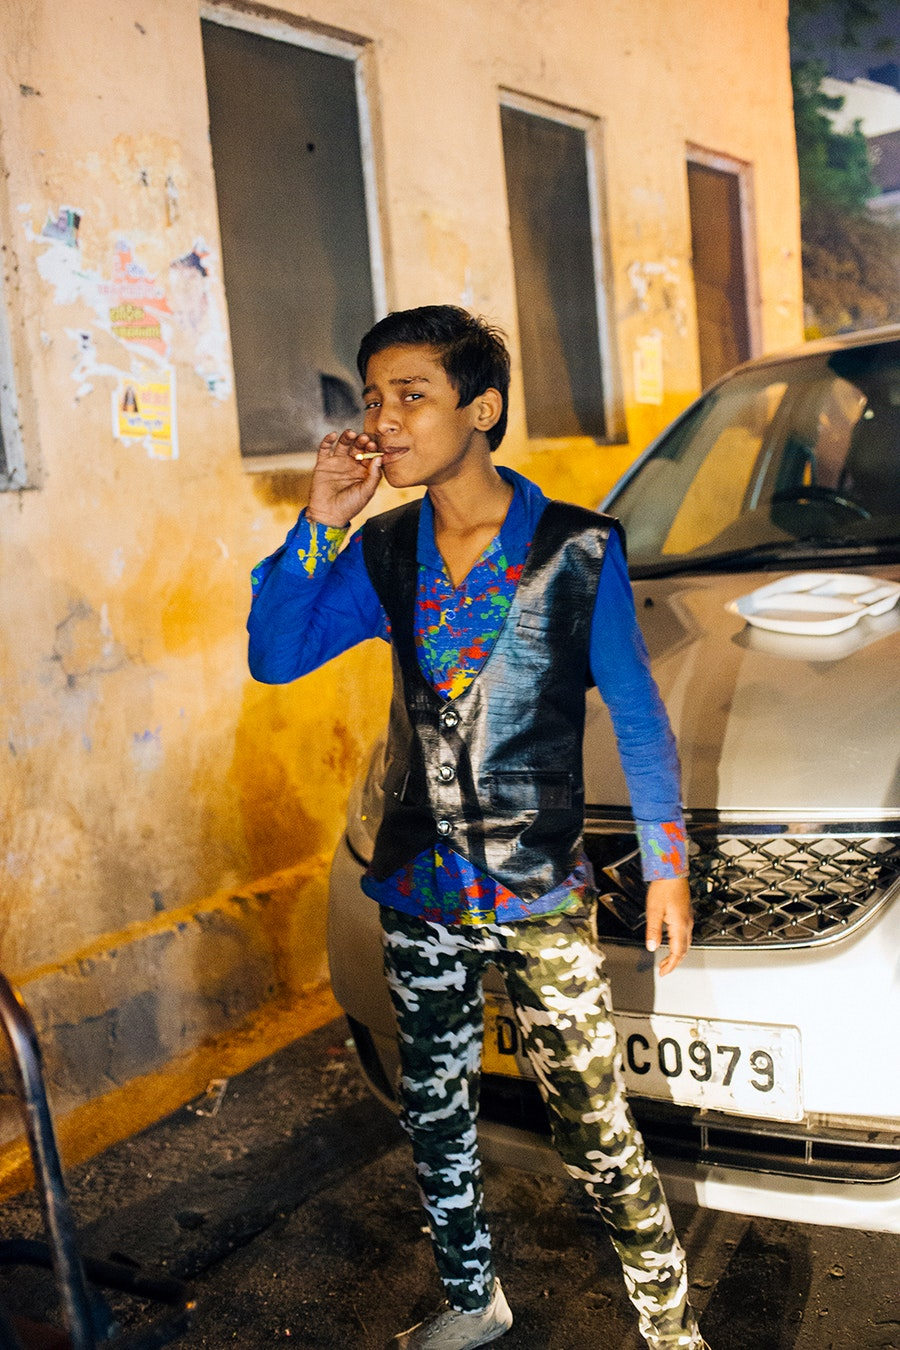 Delhi_smoking_youth2